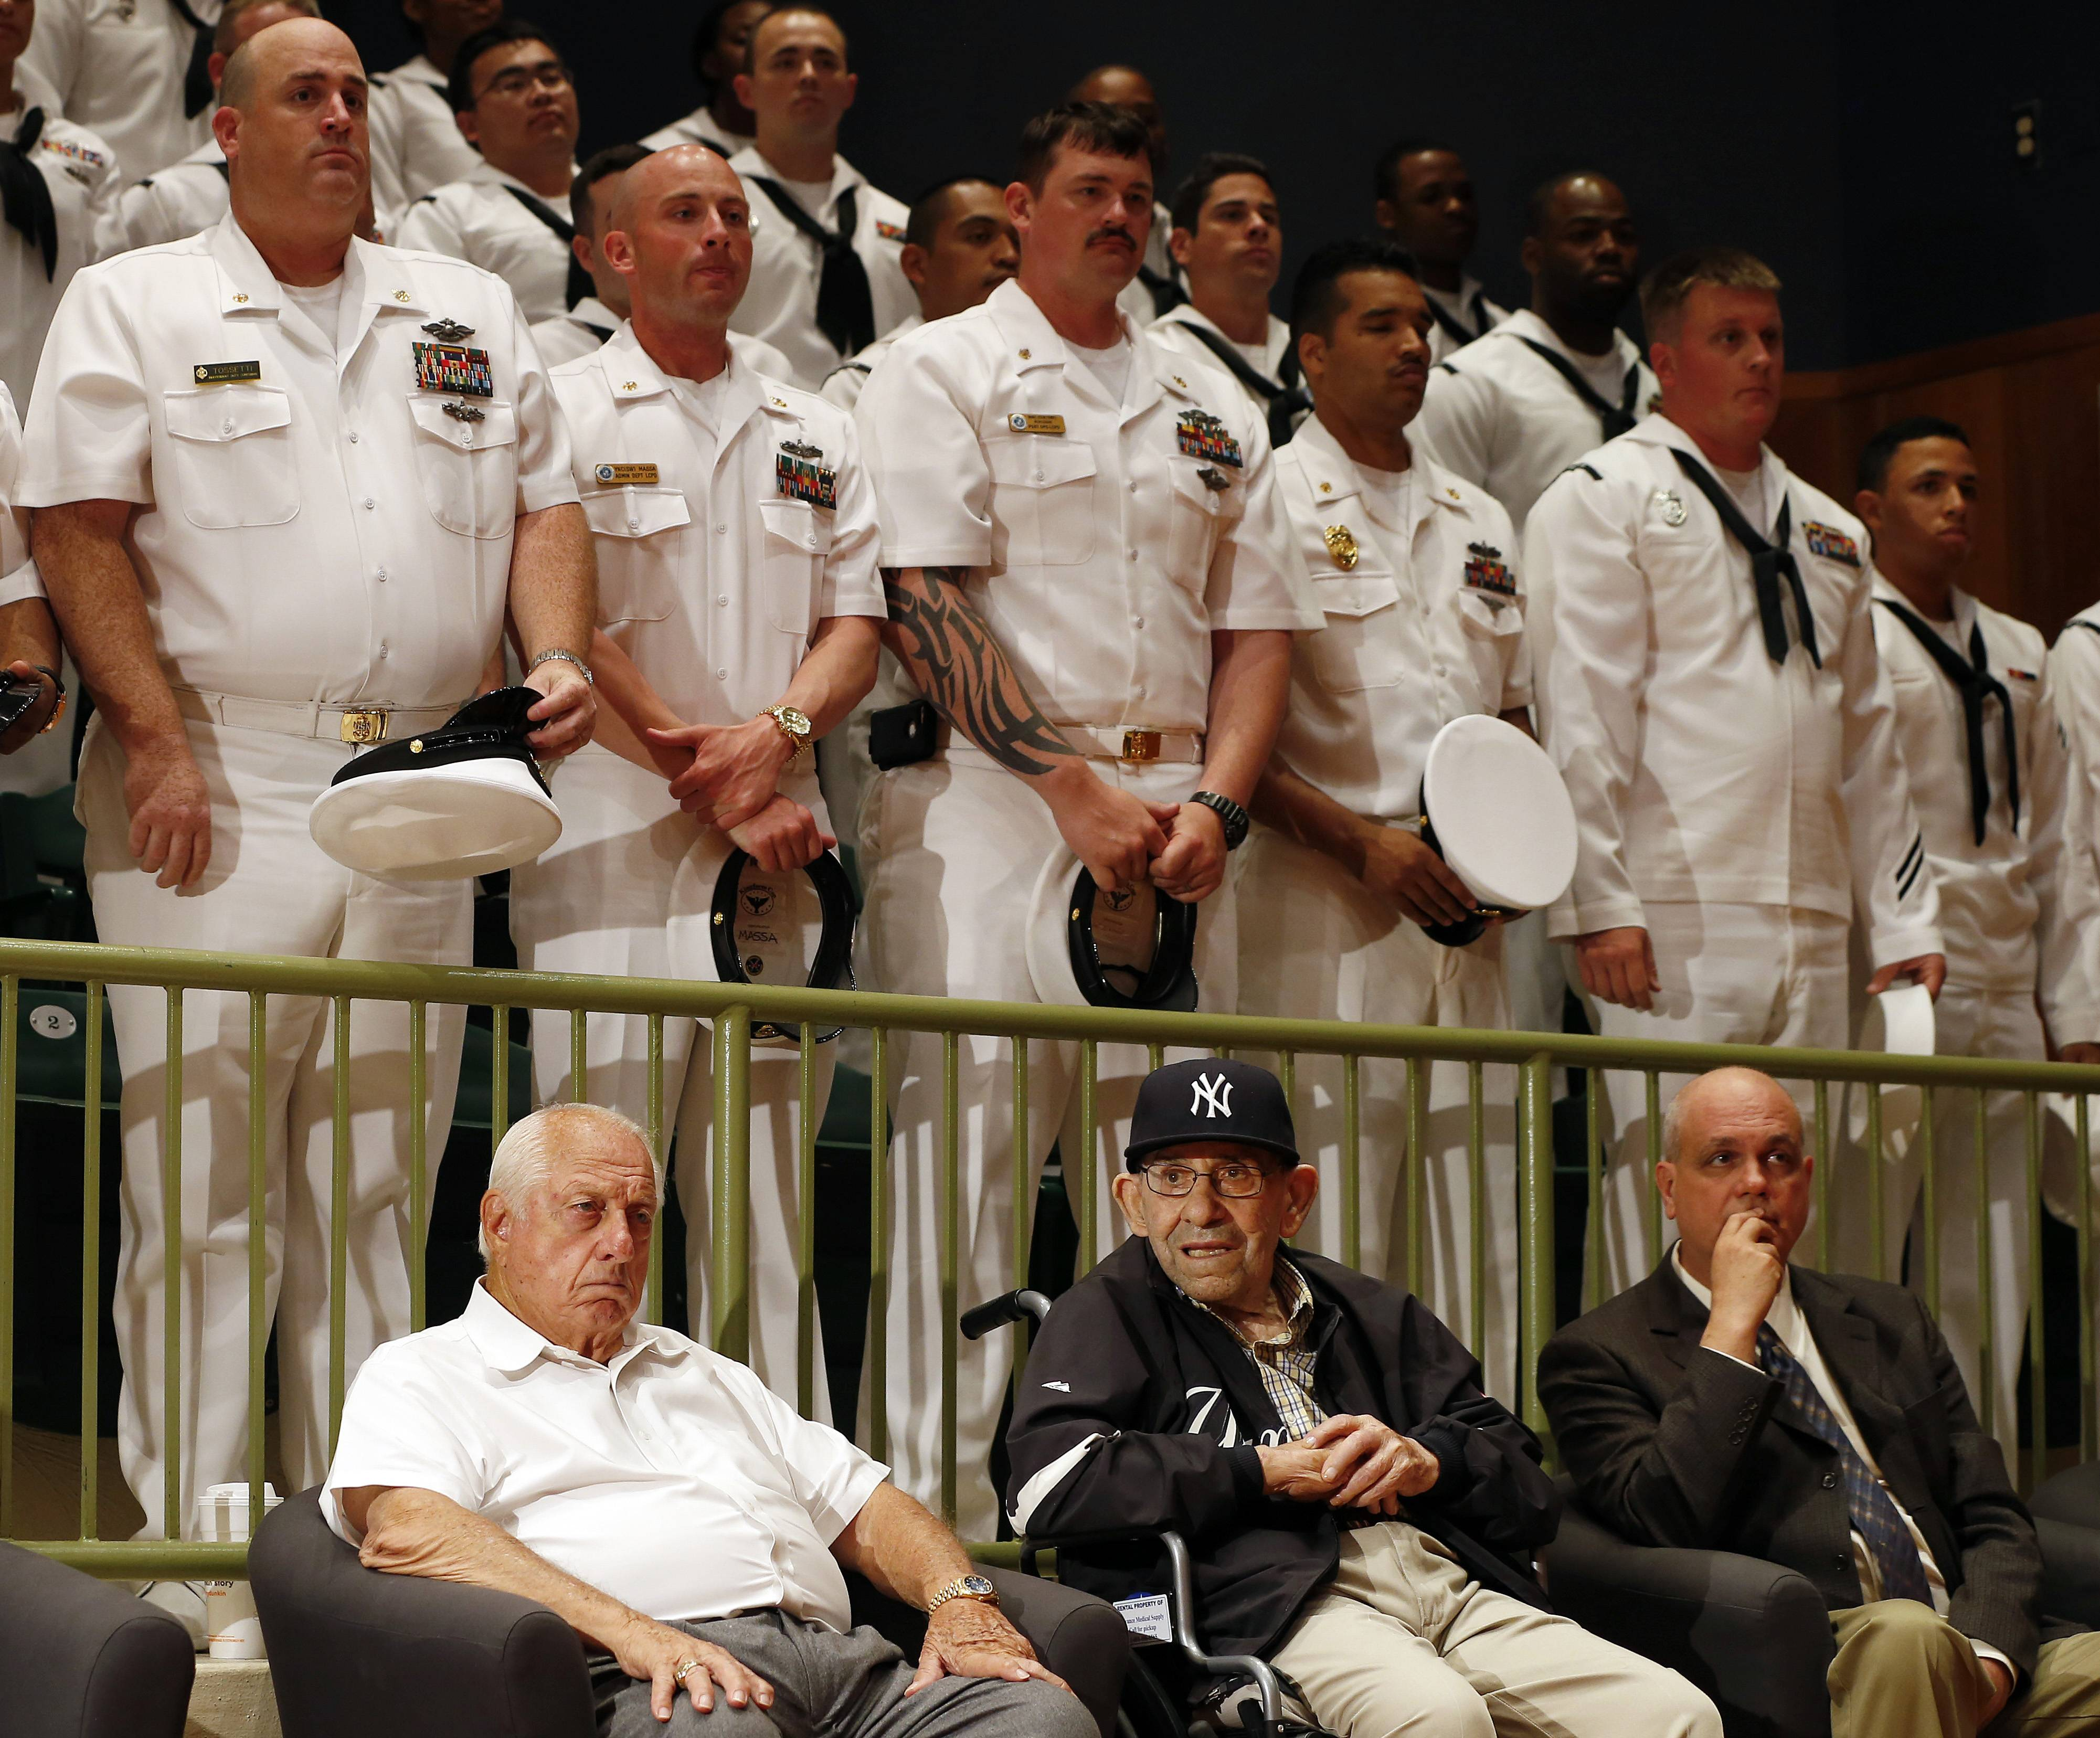 Former Los Angeles Dodger manager Tommy Lasorda, front left, joins Yogi Berra, who is honored by the U.S. Navy for his service 70 years ago in the D-Day Invasion during a ceremony, Friday, June 6, 2014, at the Yogi Berra Museum in Montclair, N.J.